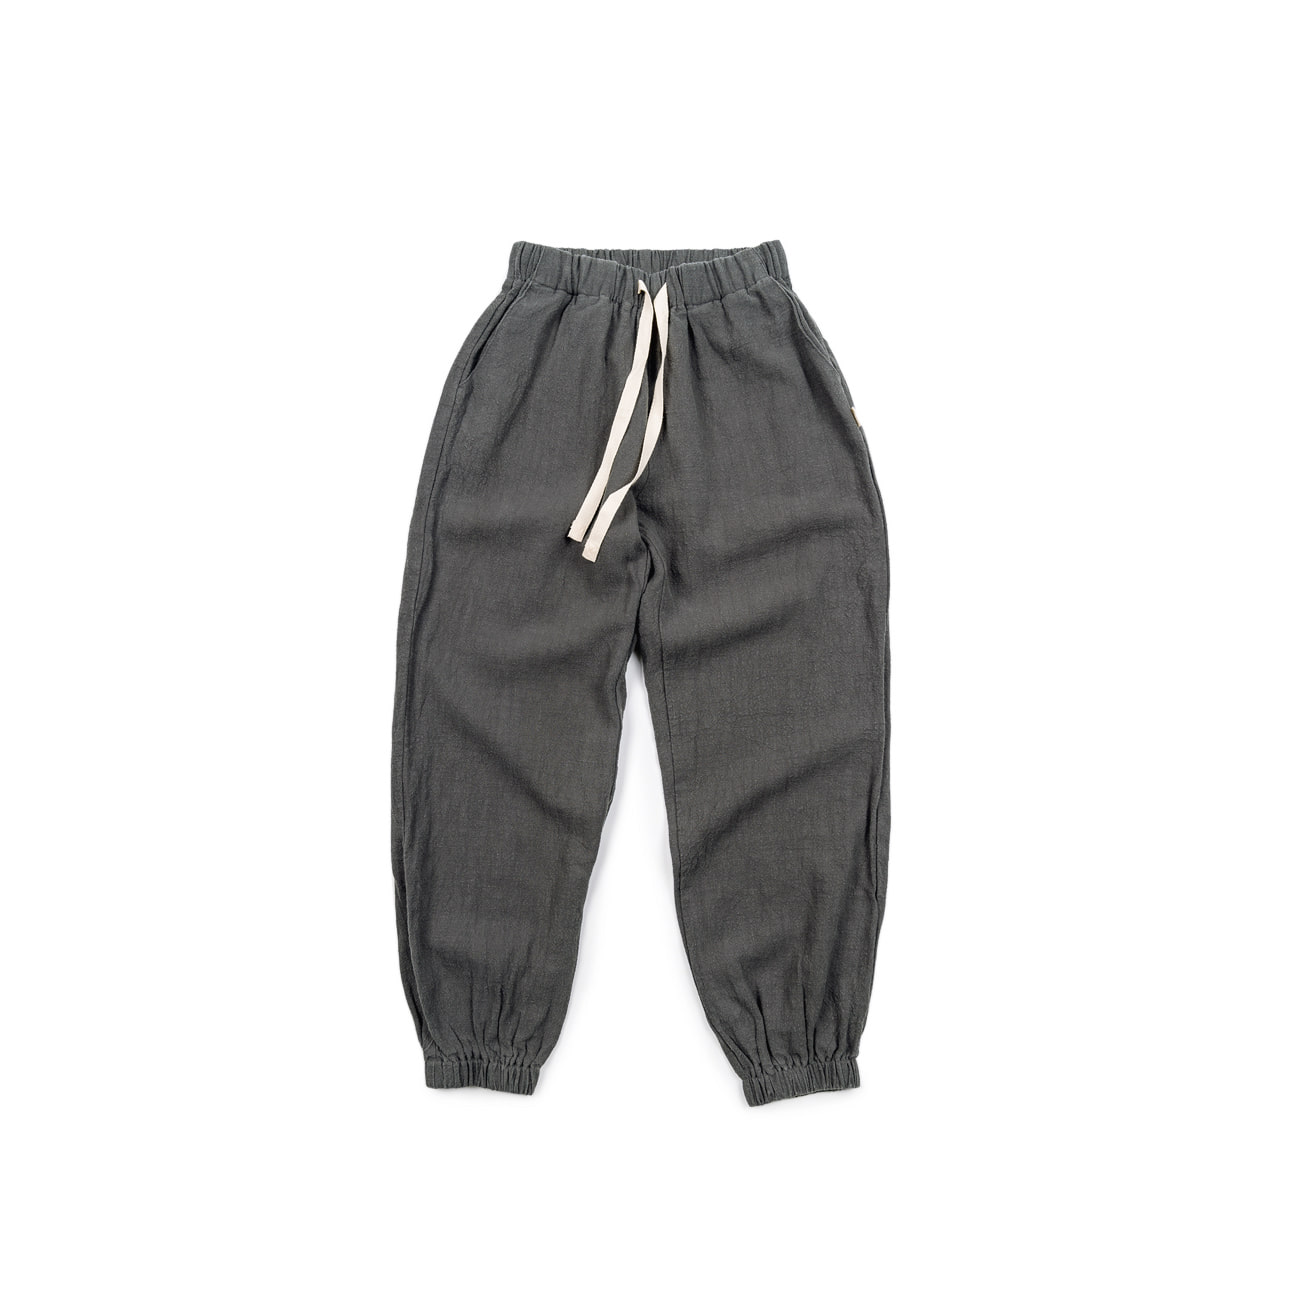 M.Nii x Matt And Mel Linen Pants